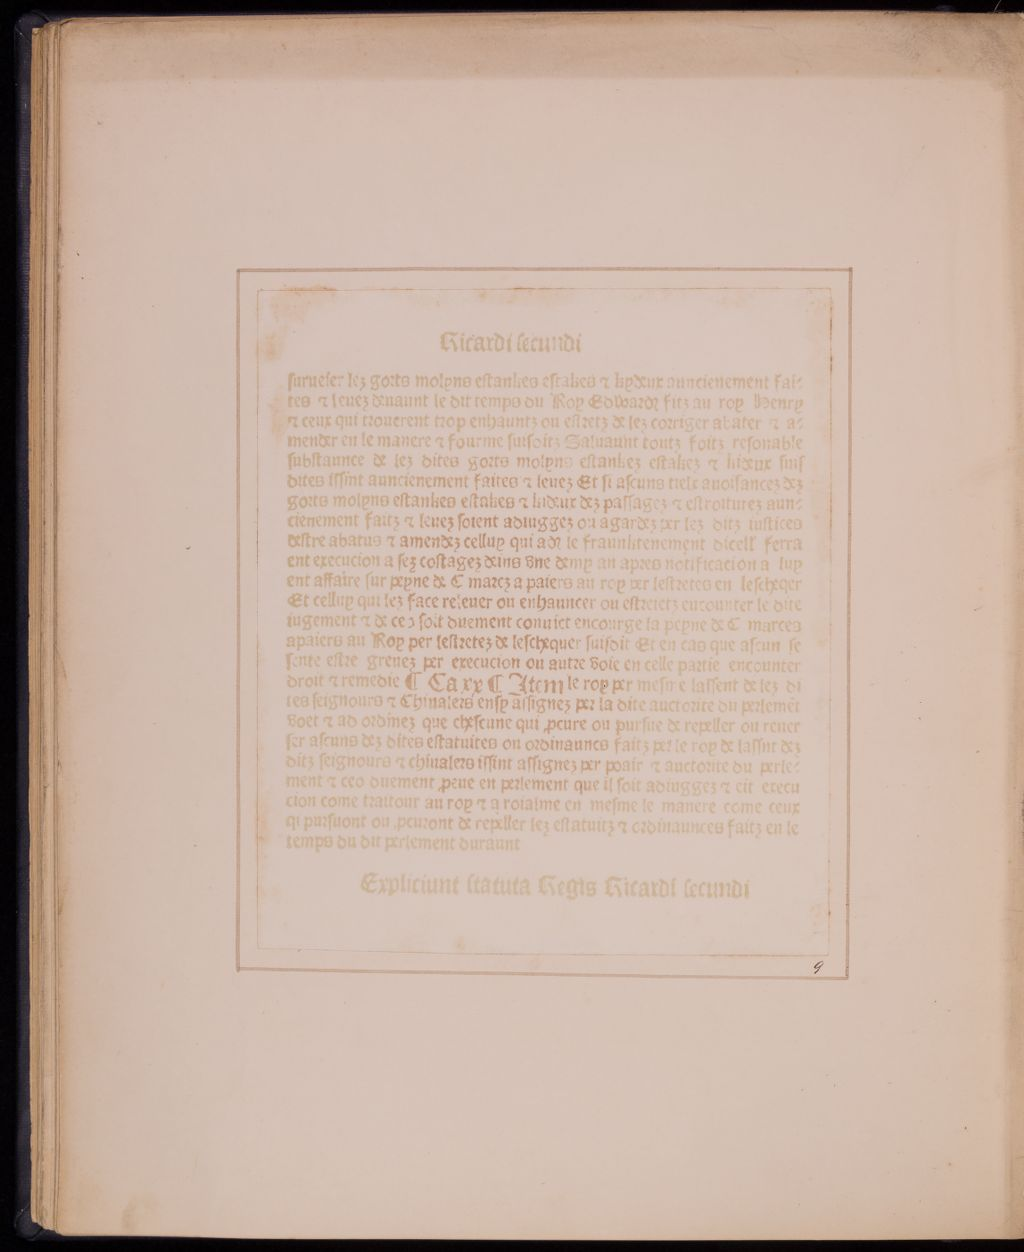 Facsimile of old Printed Page.